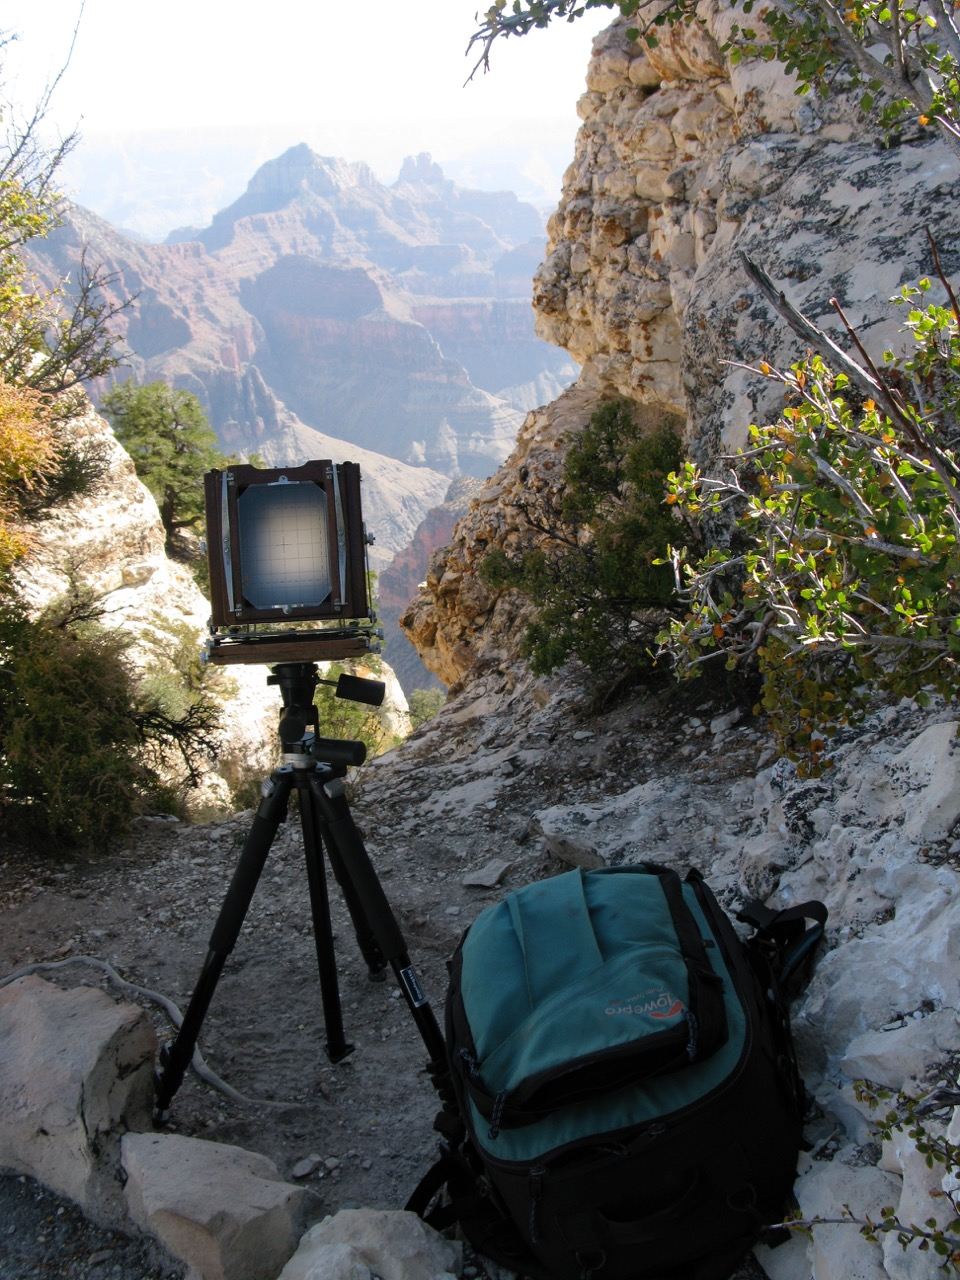 The Deardorff Camera at the edge of Black Canyon, Colorado.